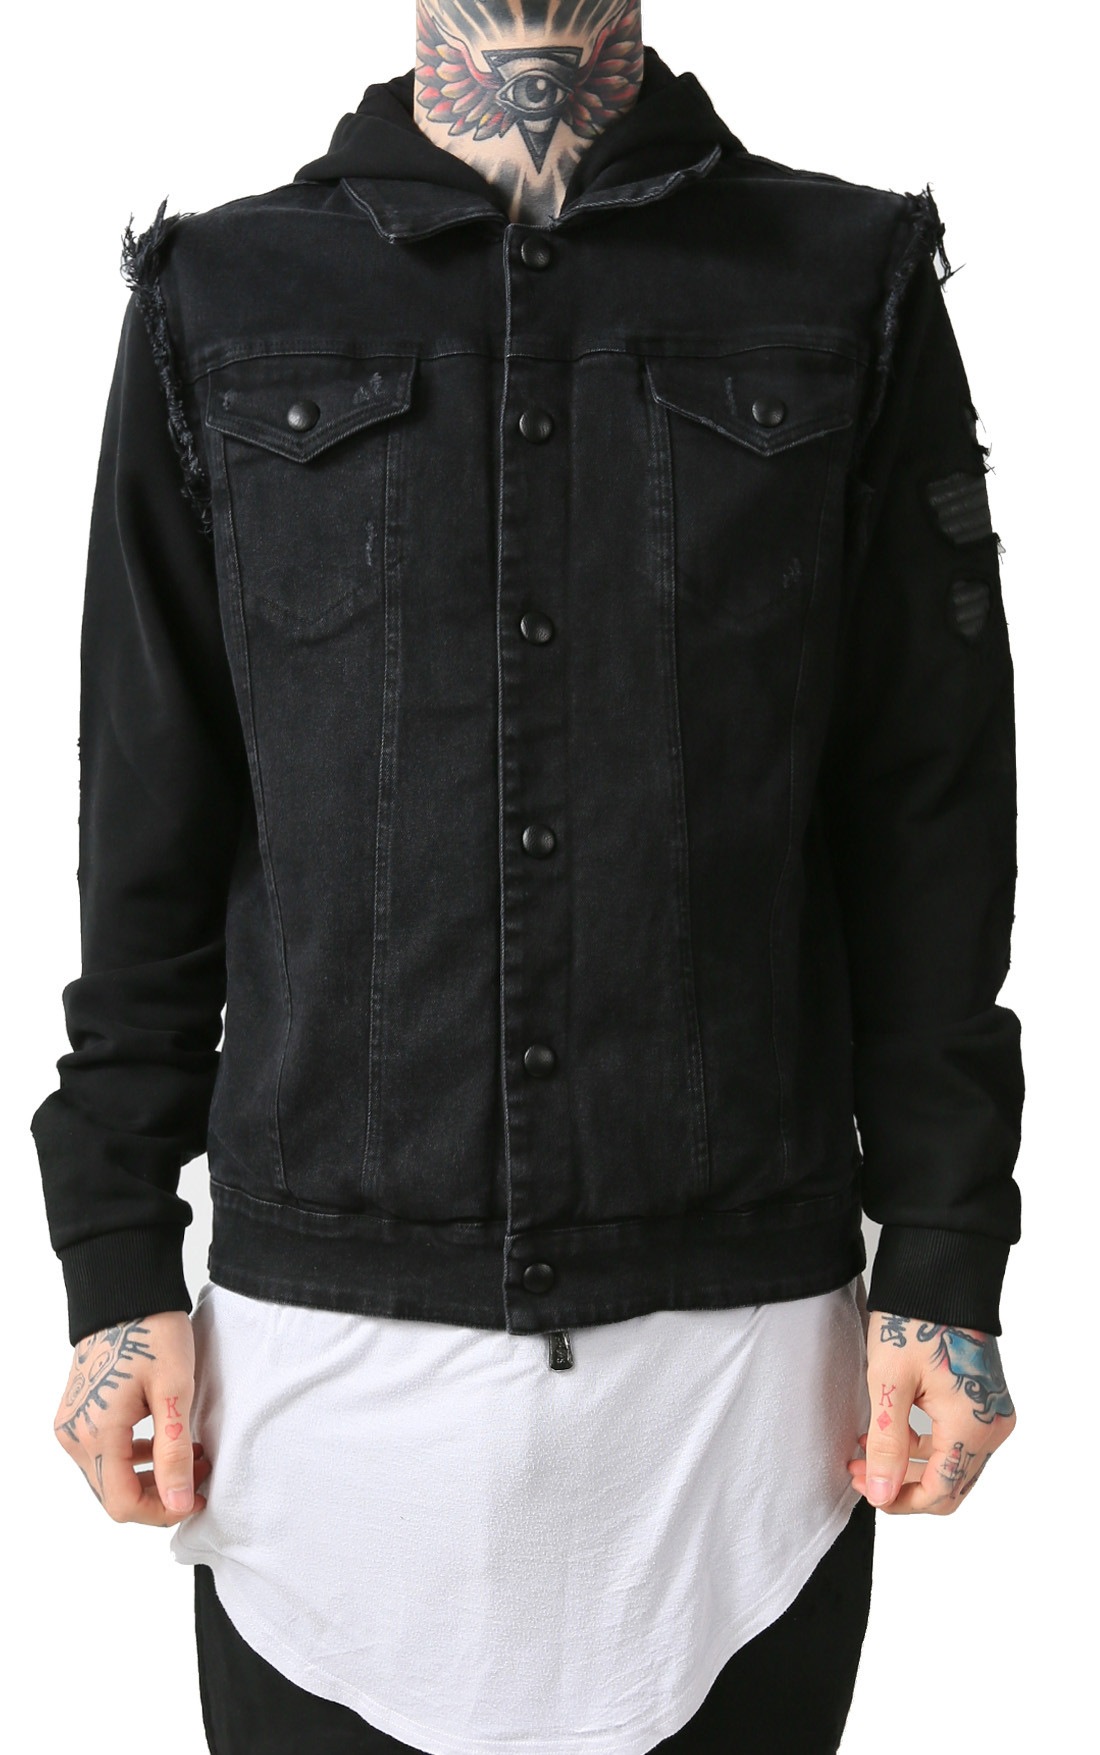 RH45 - Black Denim Jacket with Fleece (J602)